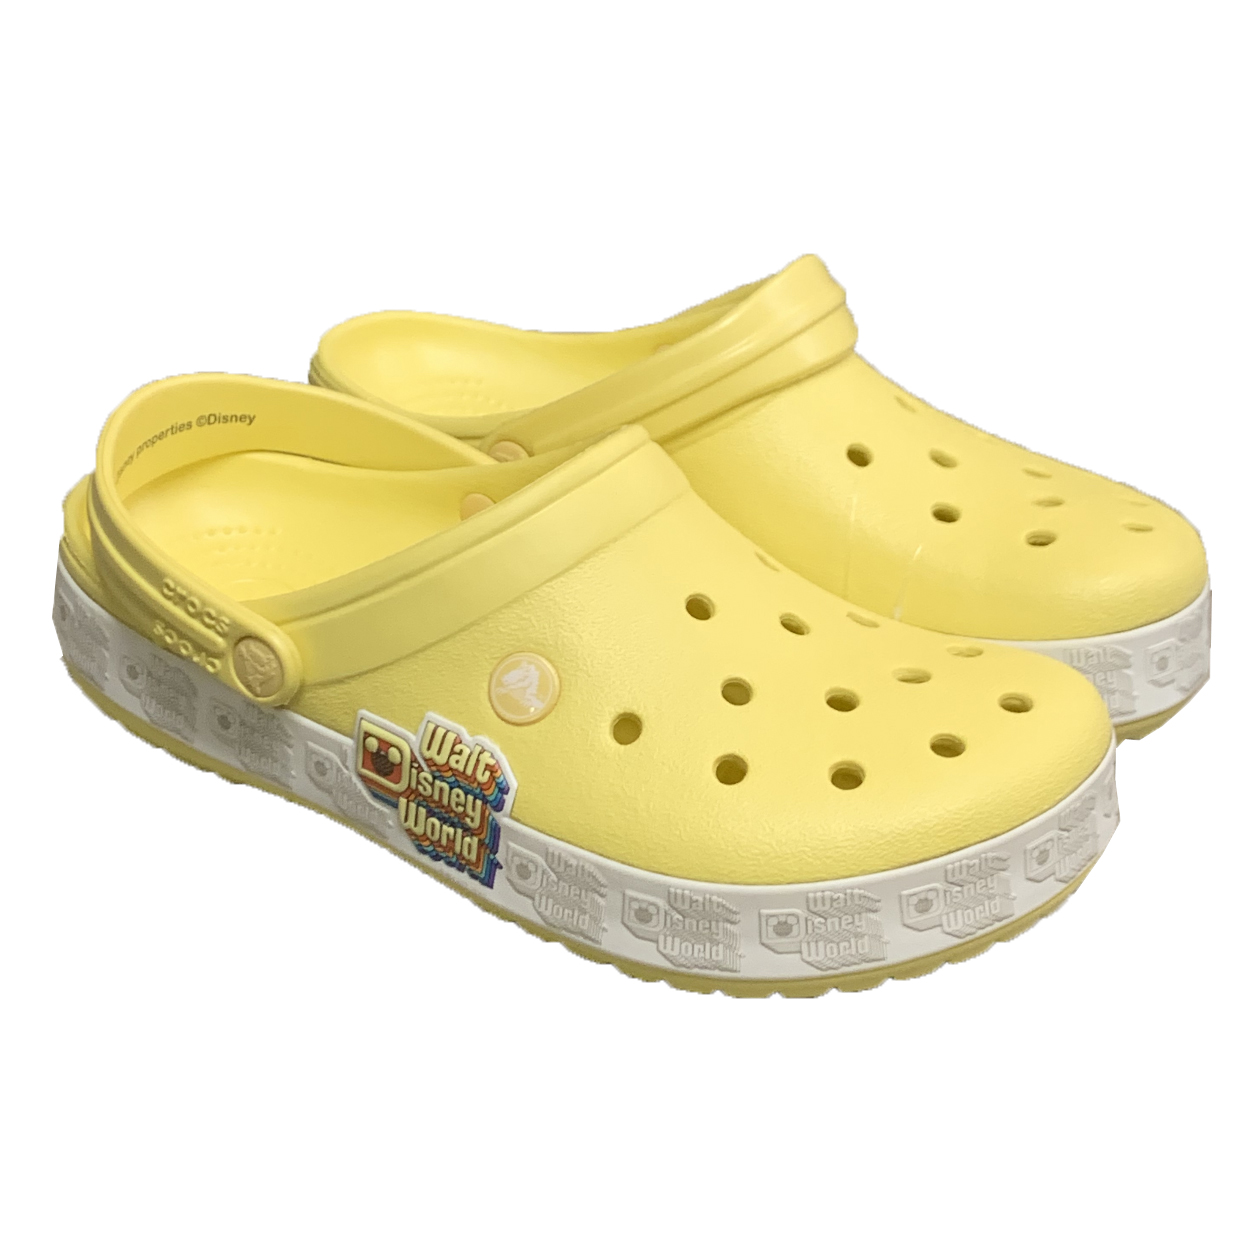 Disney Crocs for Adults - Walt Disney World - Yellow